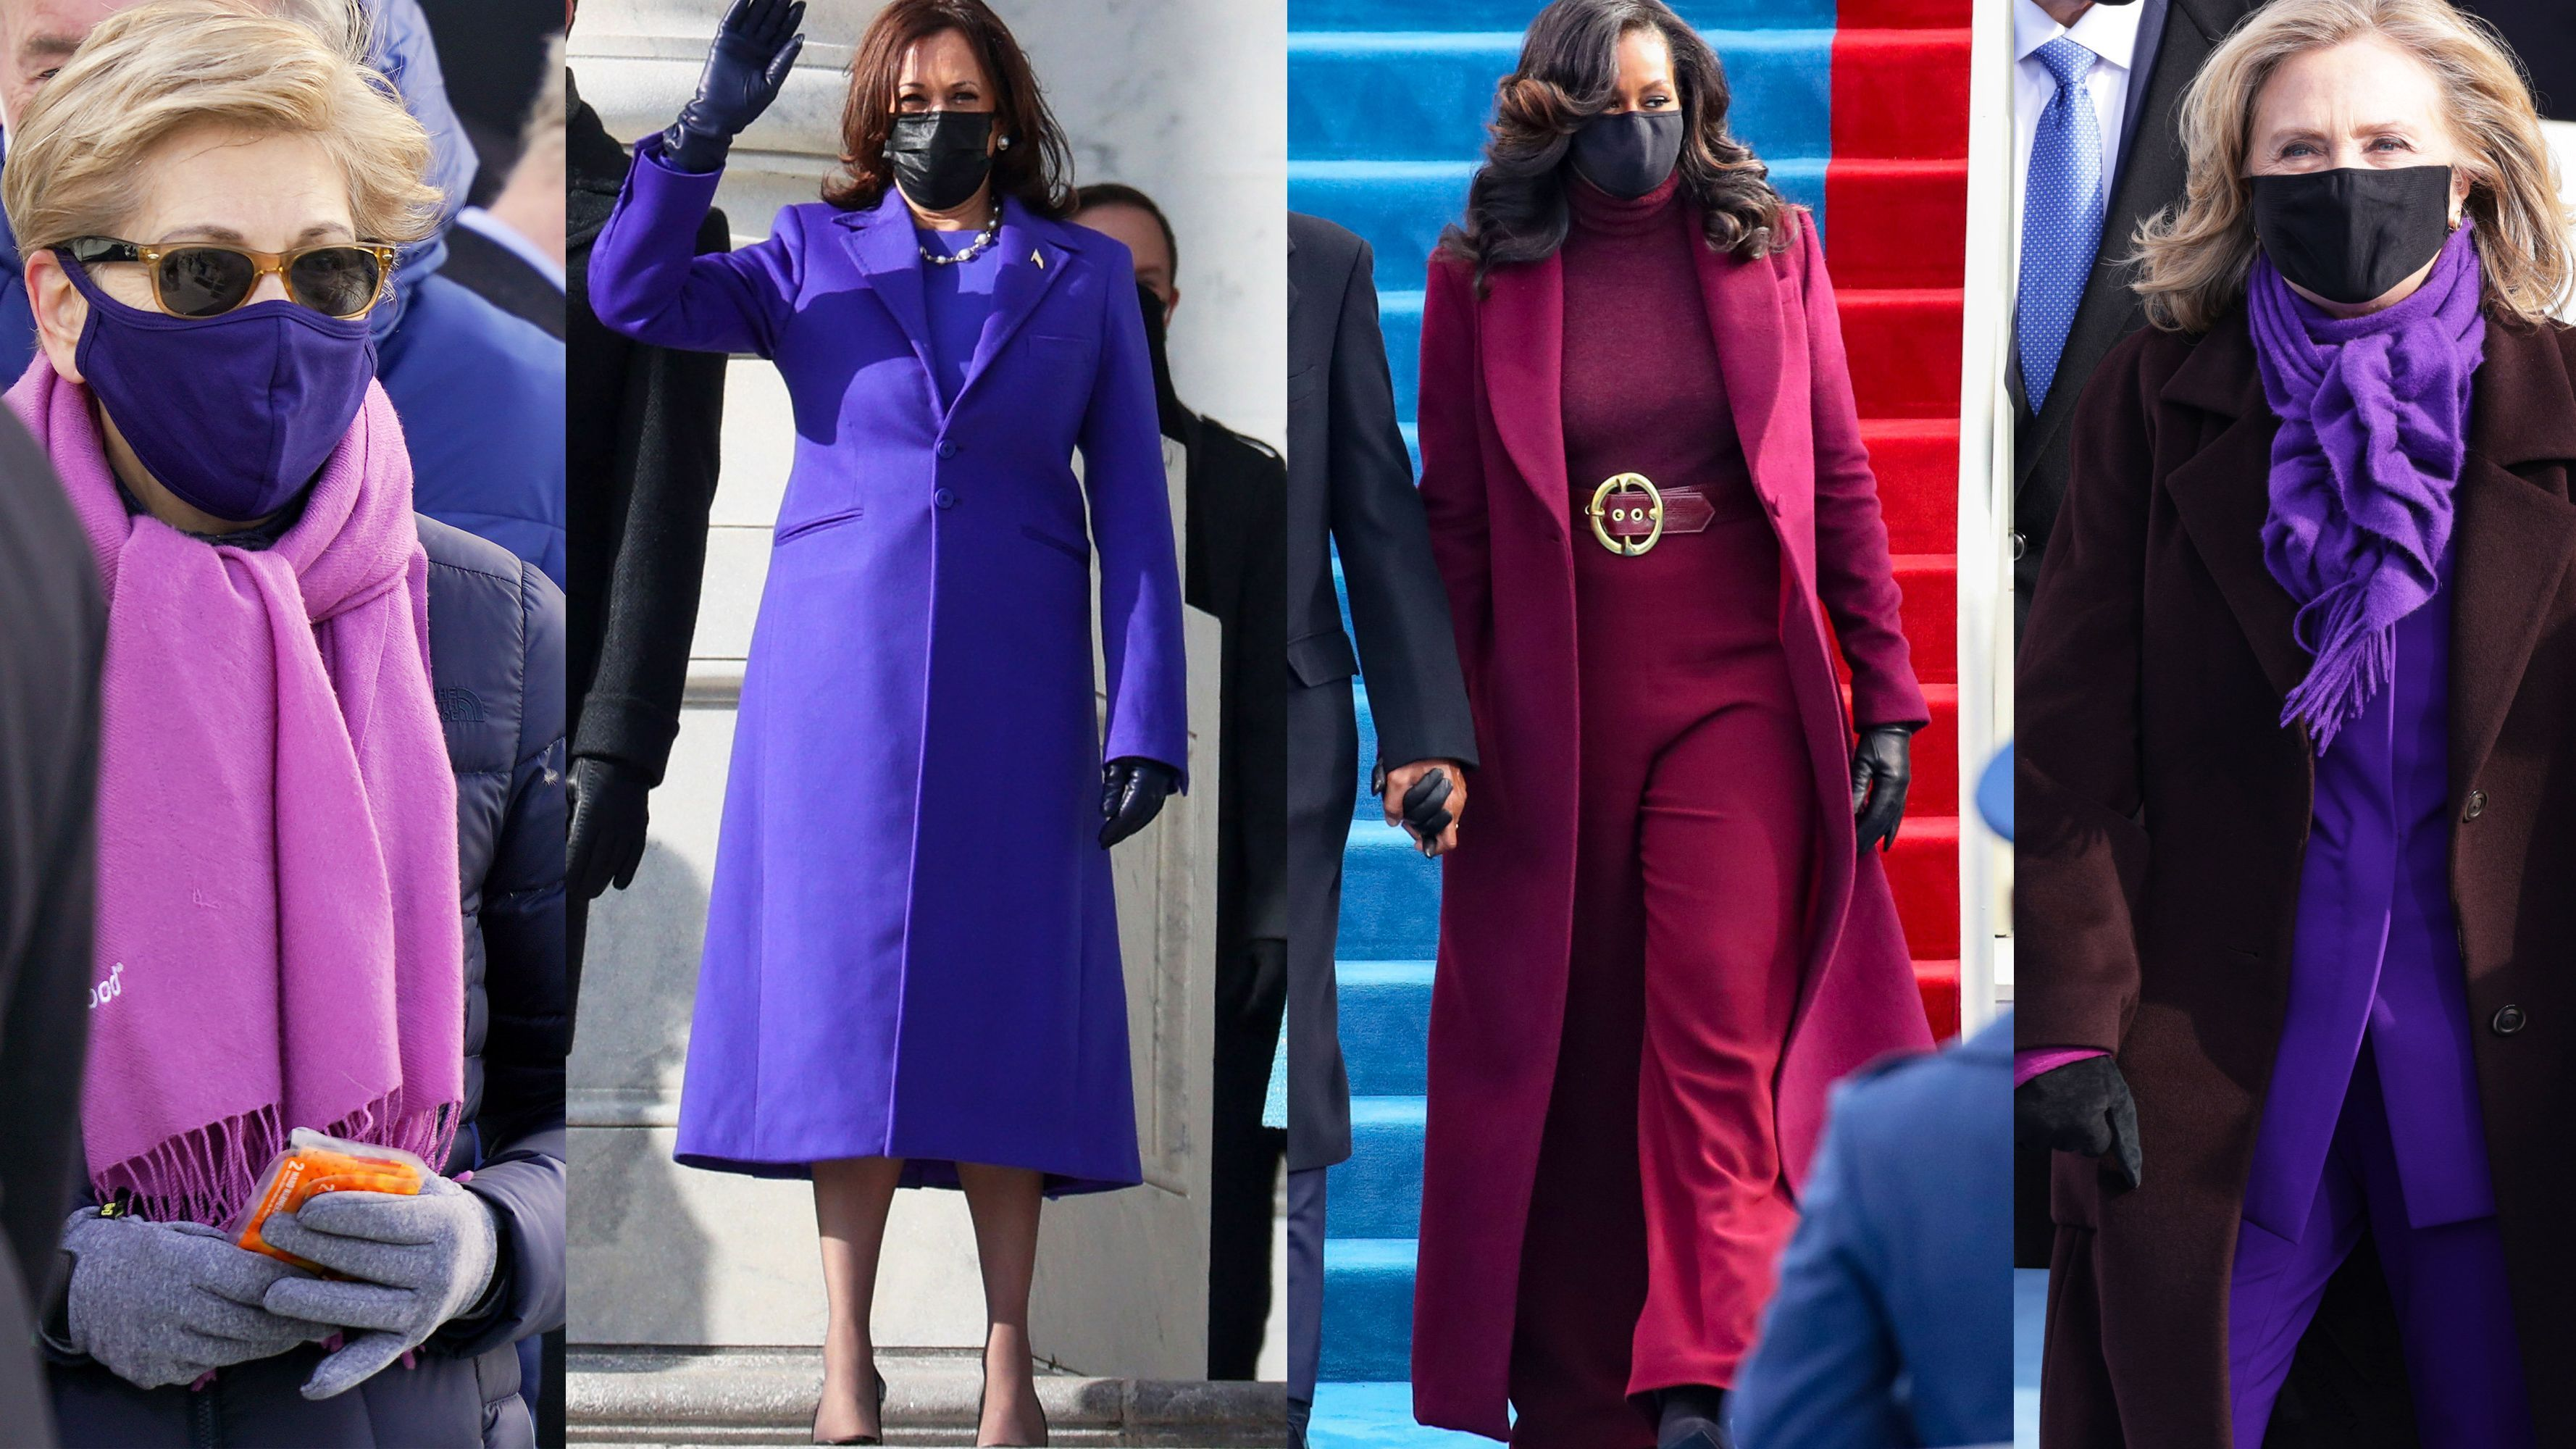 Why Women are Wearing Purple Outfits on Inauguration Day 2021